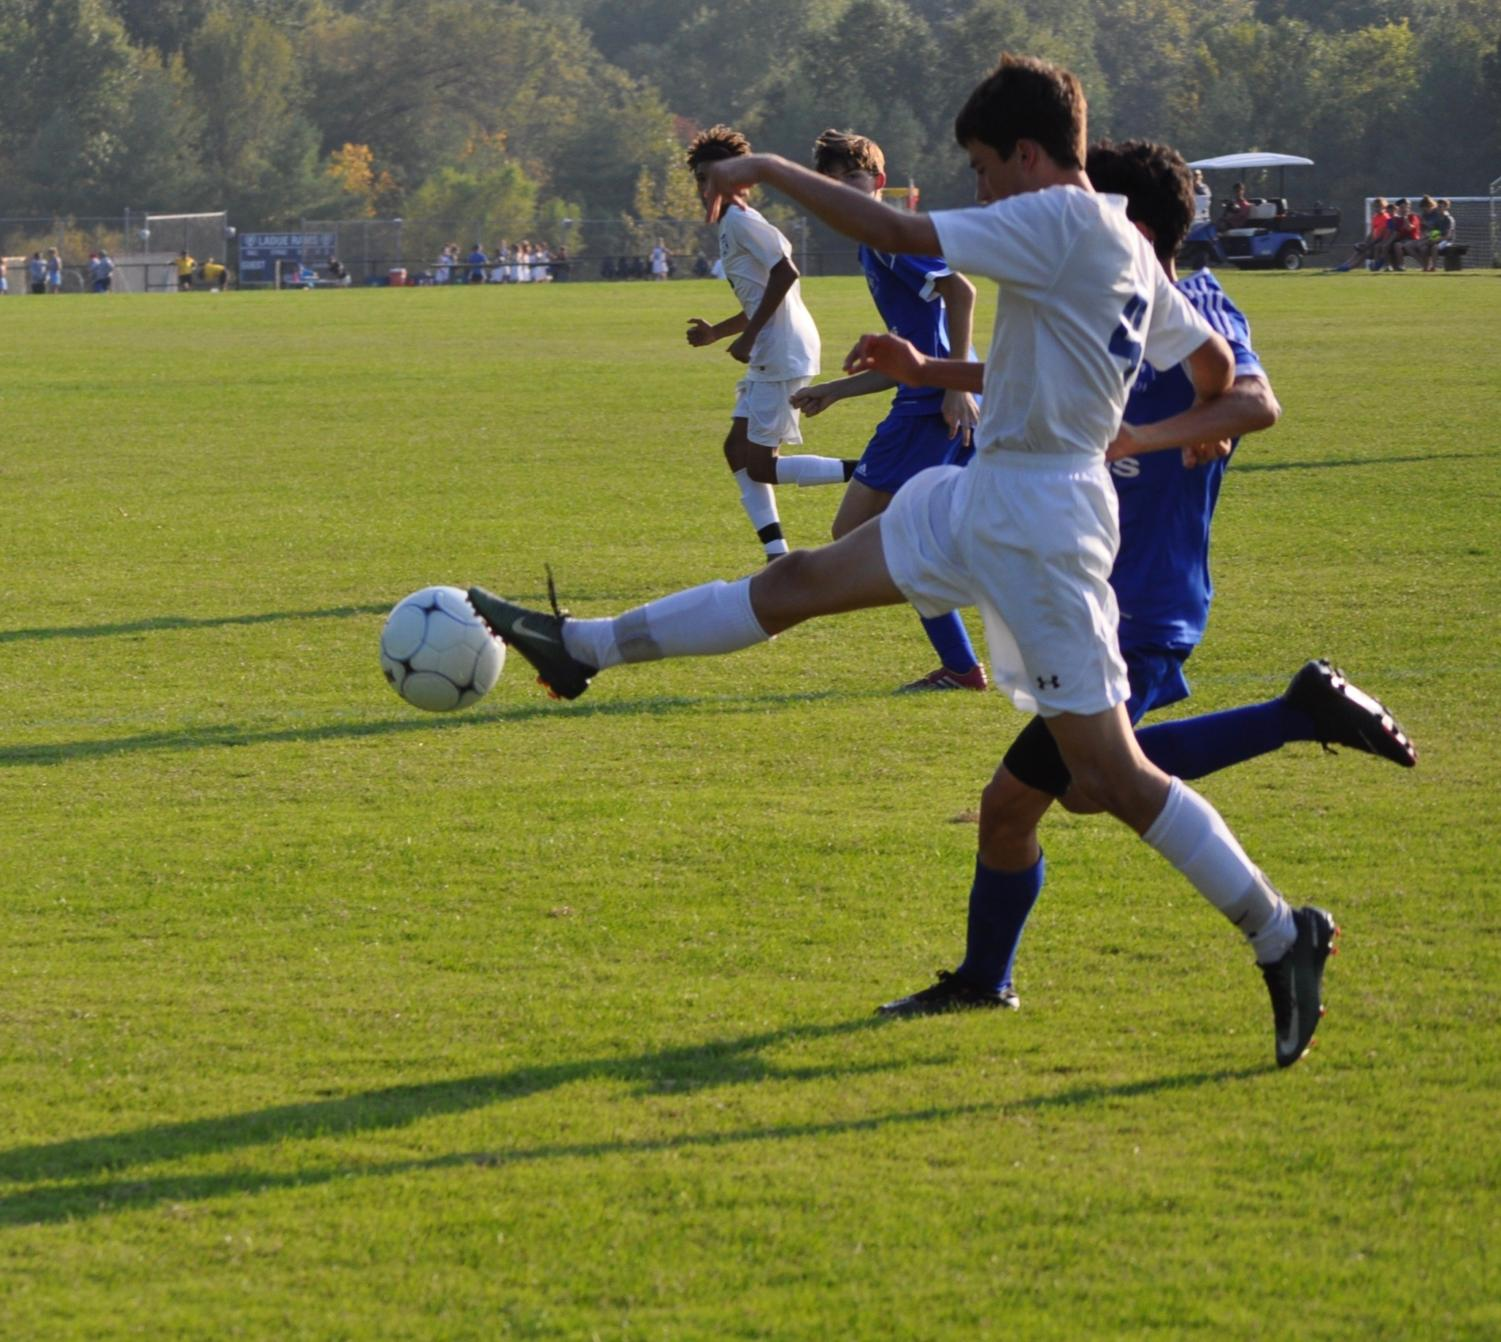 Freshman Grant Garland challenges the SLUH player for the ball.